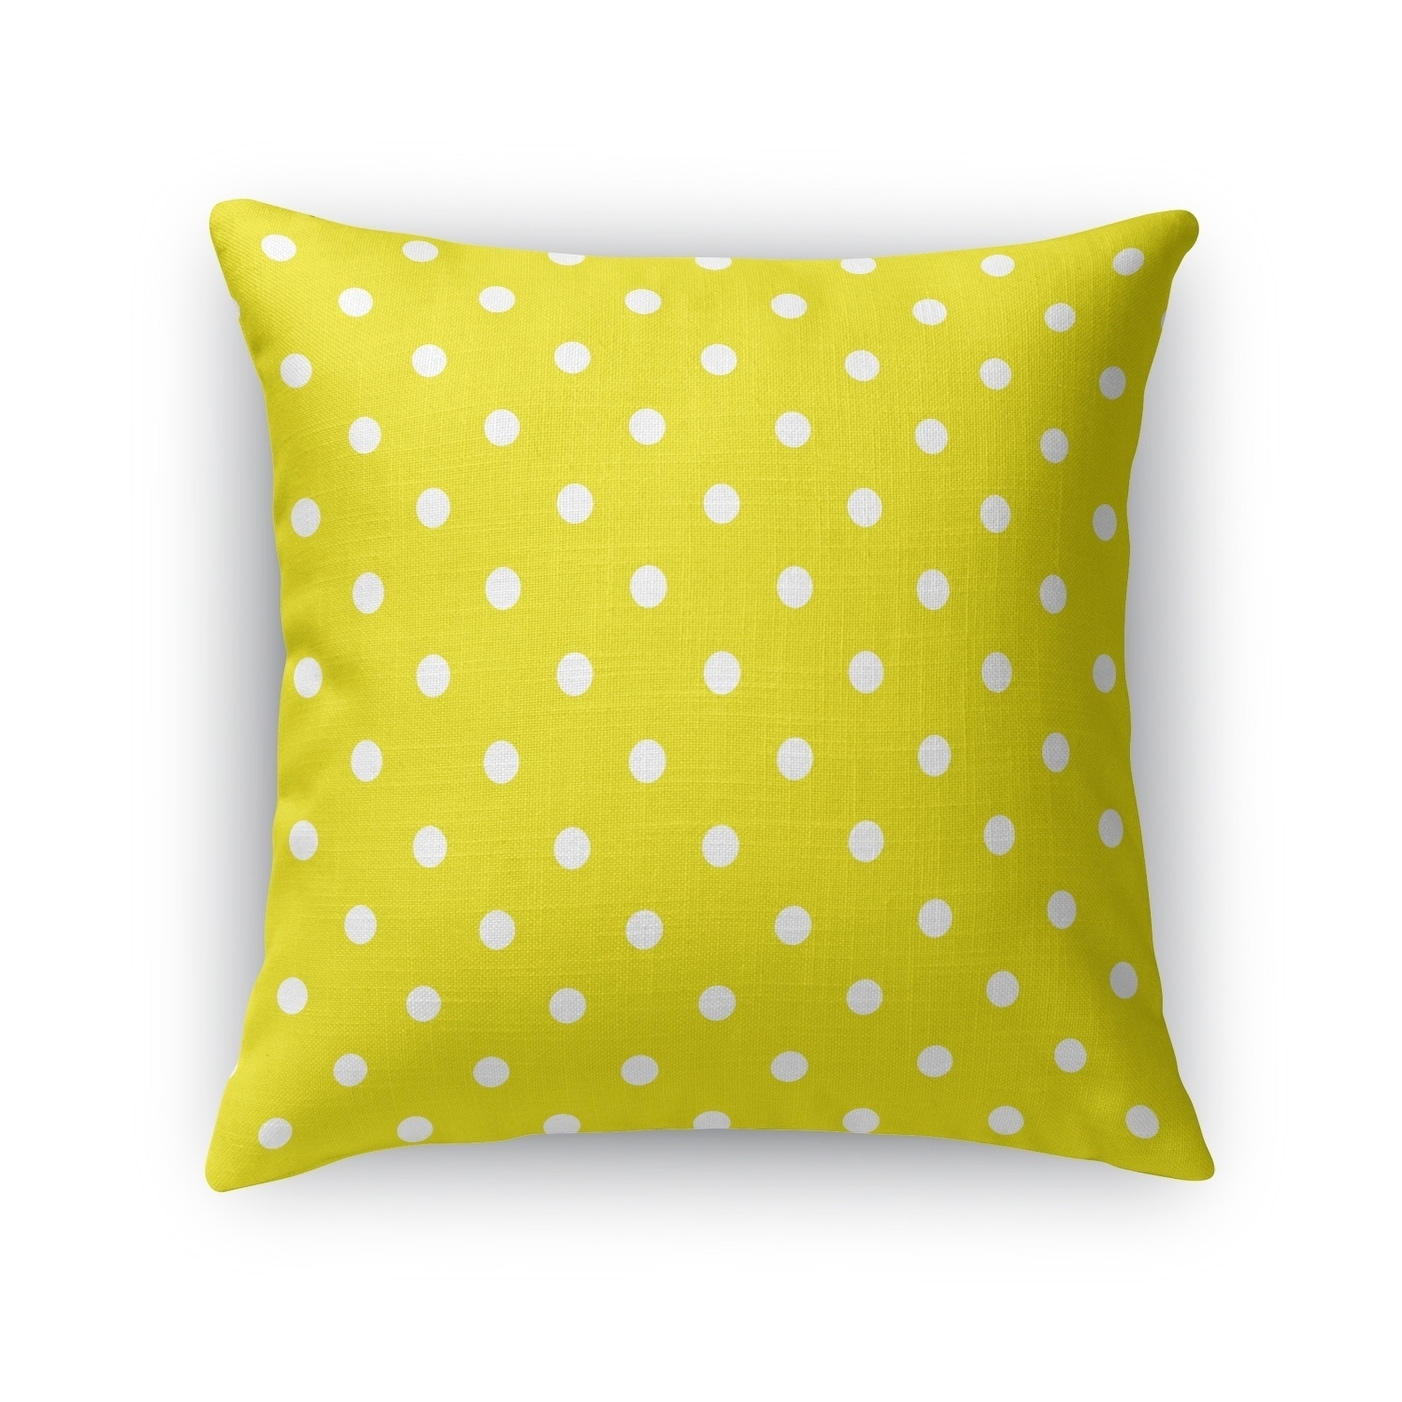 Polka Dots Yellow Accent Pillow By Kavka Designs Overstock 28250165